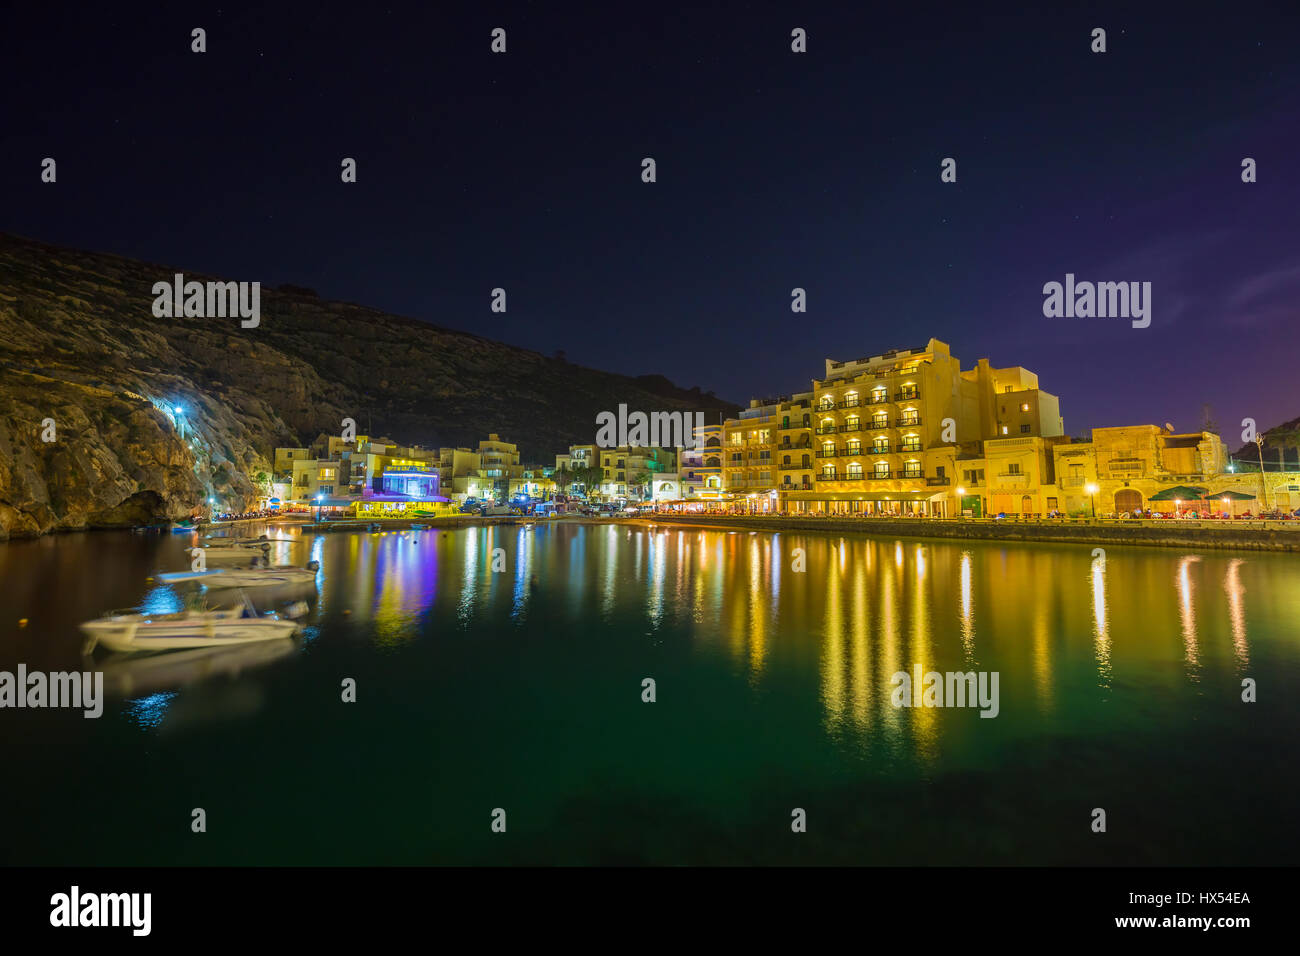 Xlendi, Gozo - Beautiful aerial view over Xlendi Bay by night with restaurants, boats and busy night life on the - Stock Image